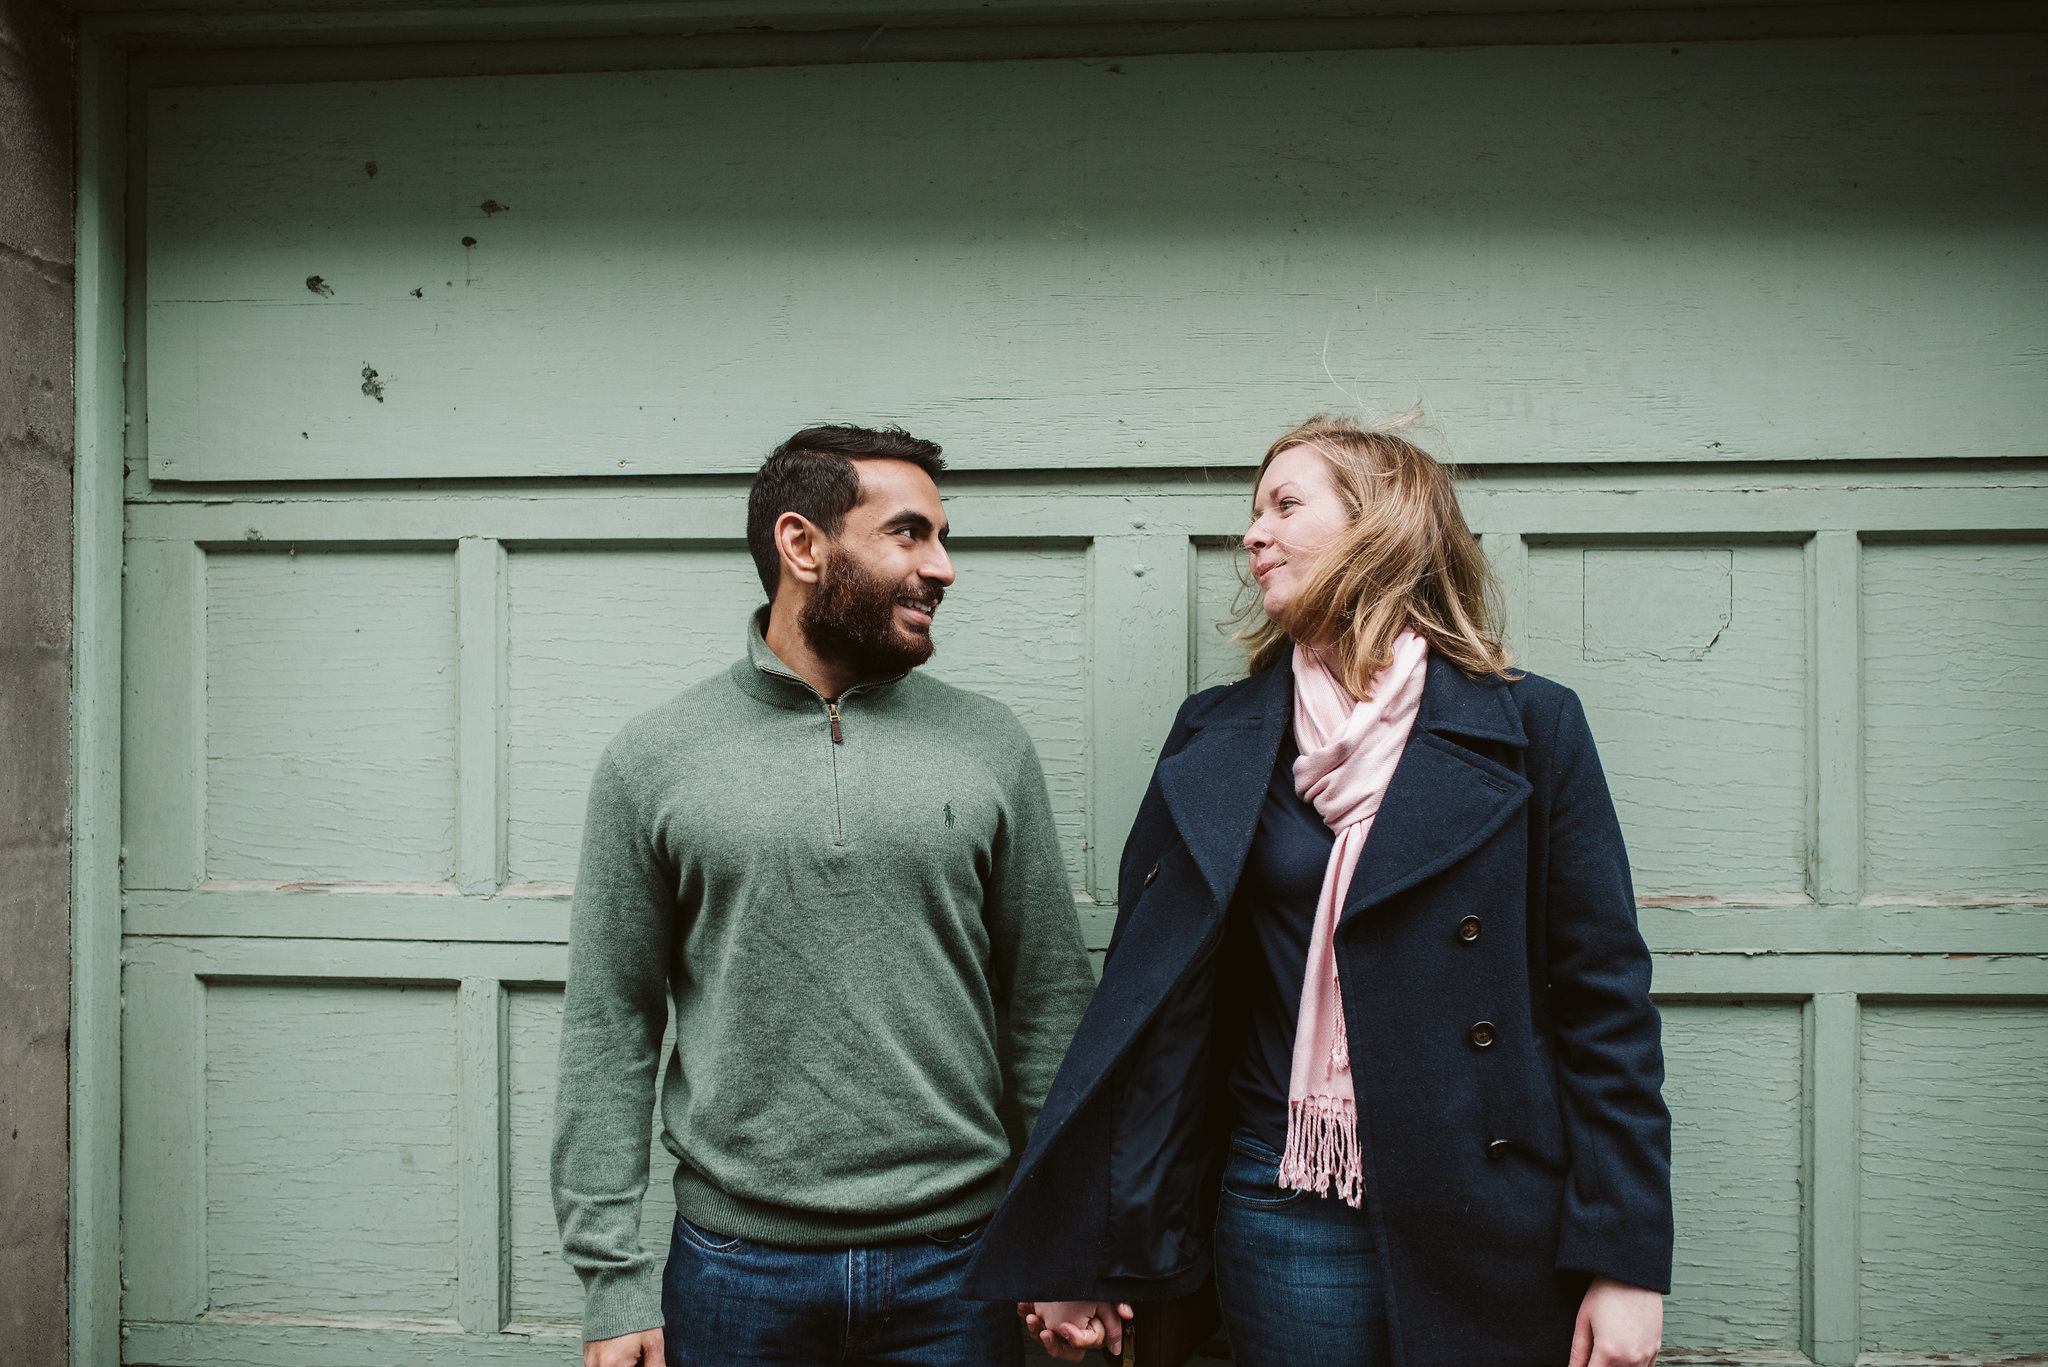 Engagement Photos, Rainy, Ellicott City, Maryland Wedding Photographer, Winter, Indian American, Traditional, Outdoor, Bride and Groom, Fun Background